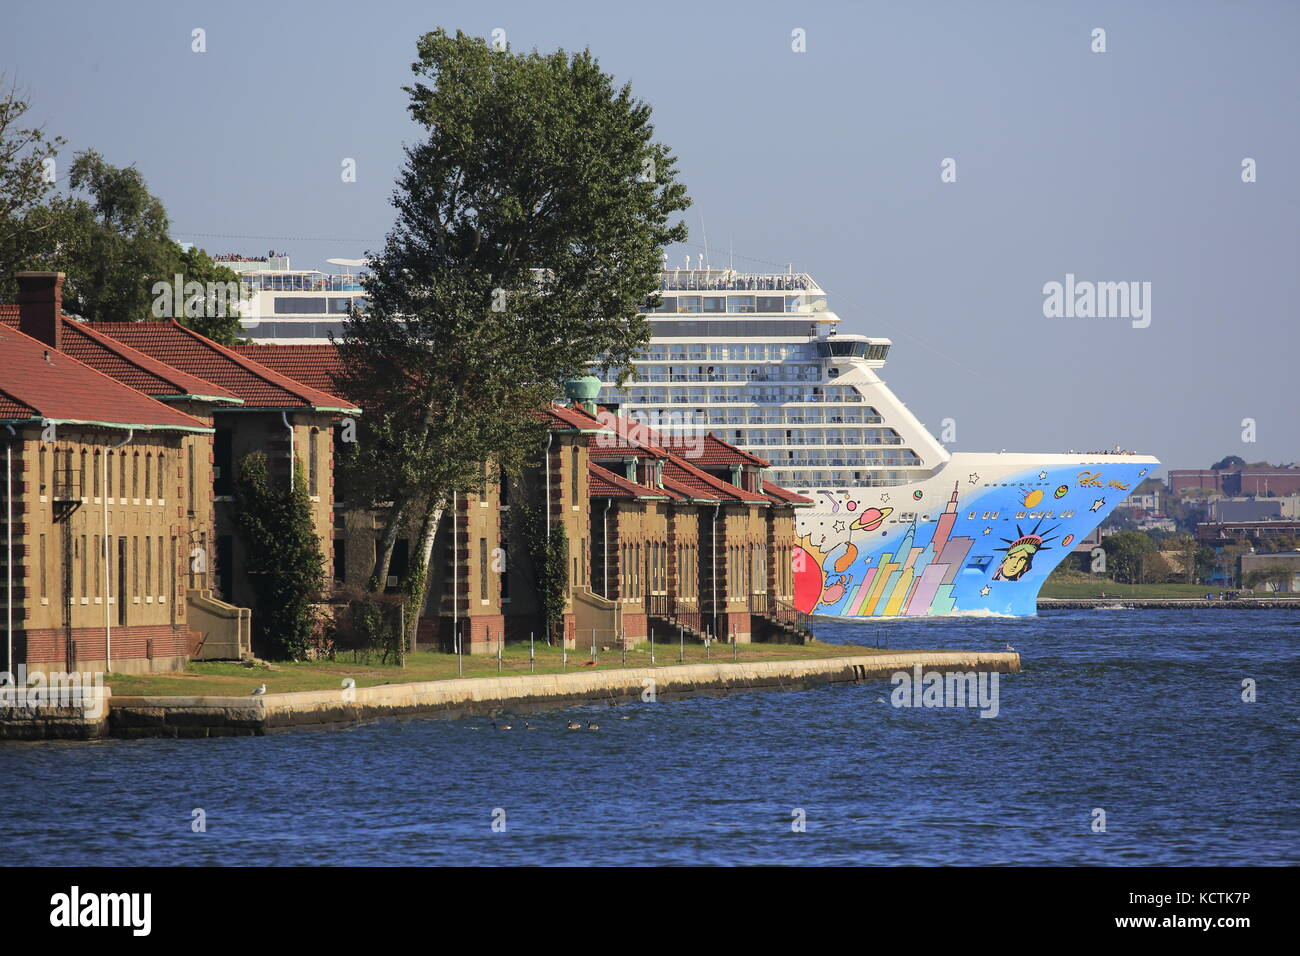 Norwegian Breakaway Cruise Ship in Hudson River with Ellis Island in foreground. New York City,New Jersey.New York.New - Stock Image